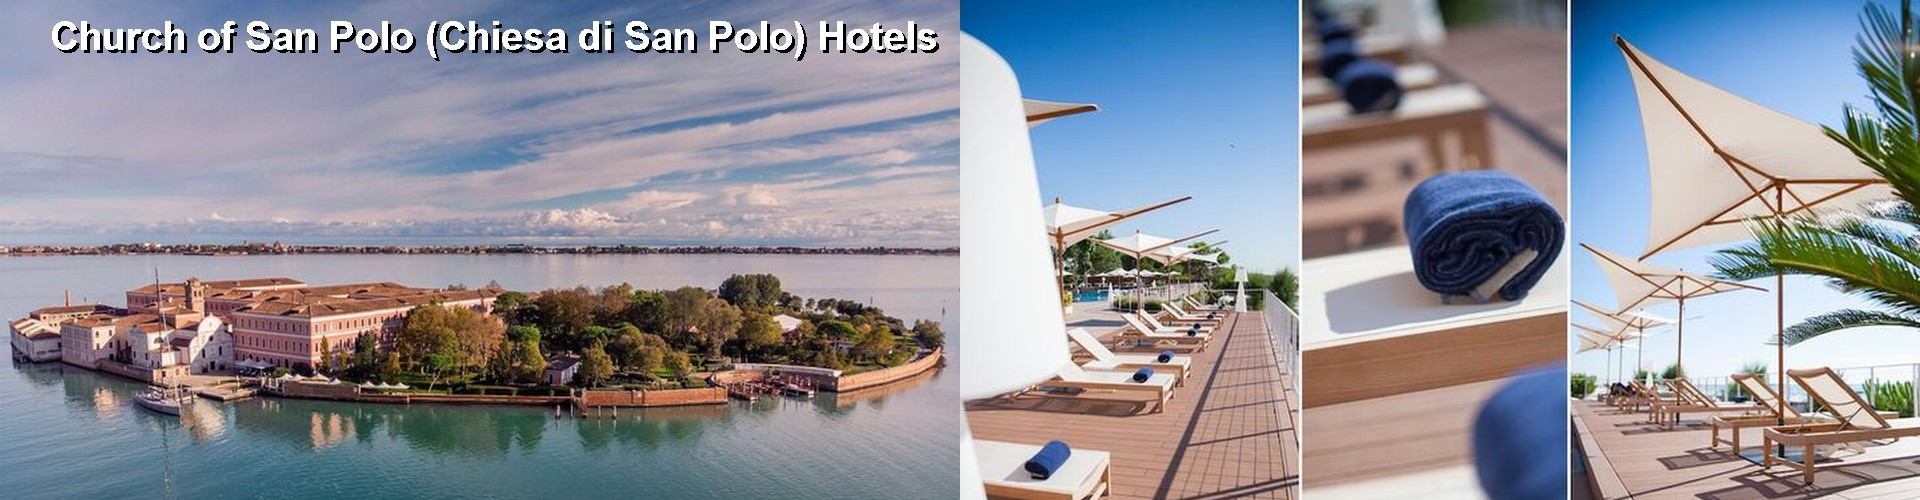 5 Best Hotels near Church of San Polo (Chiesa di San Polo)